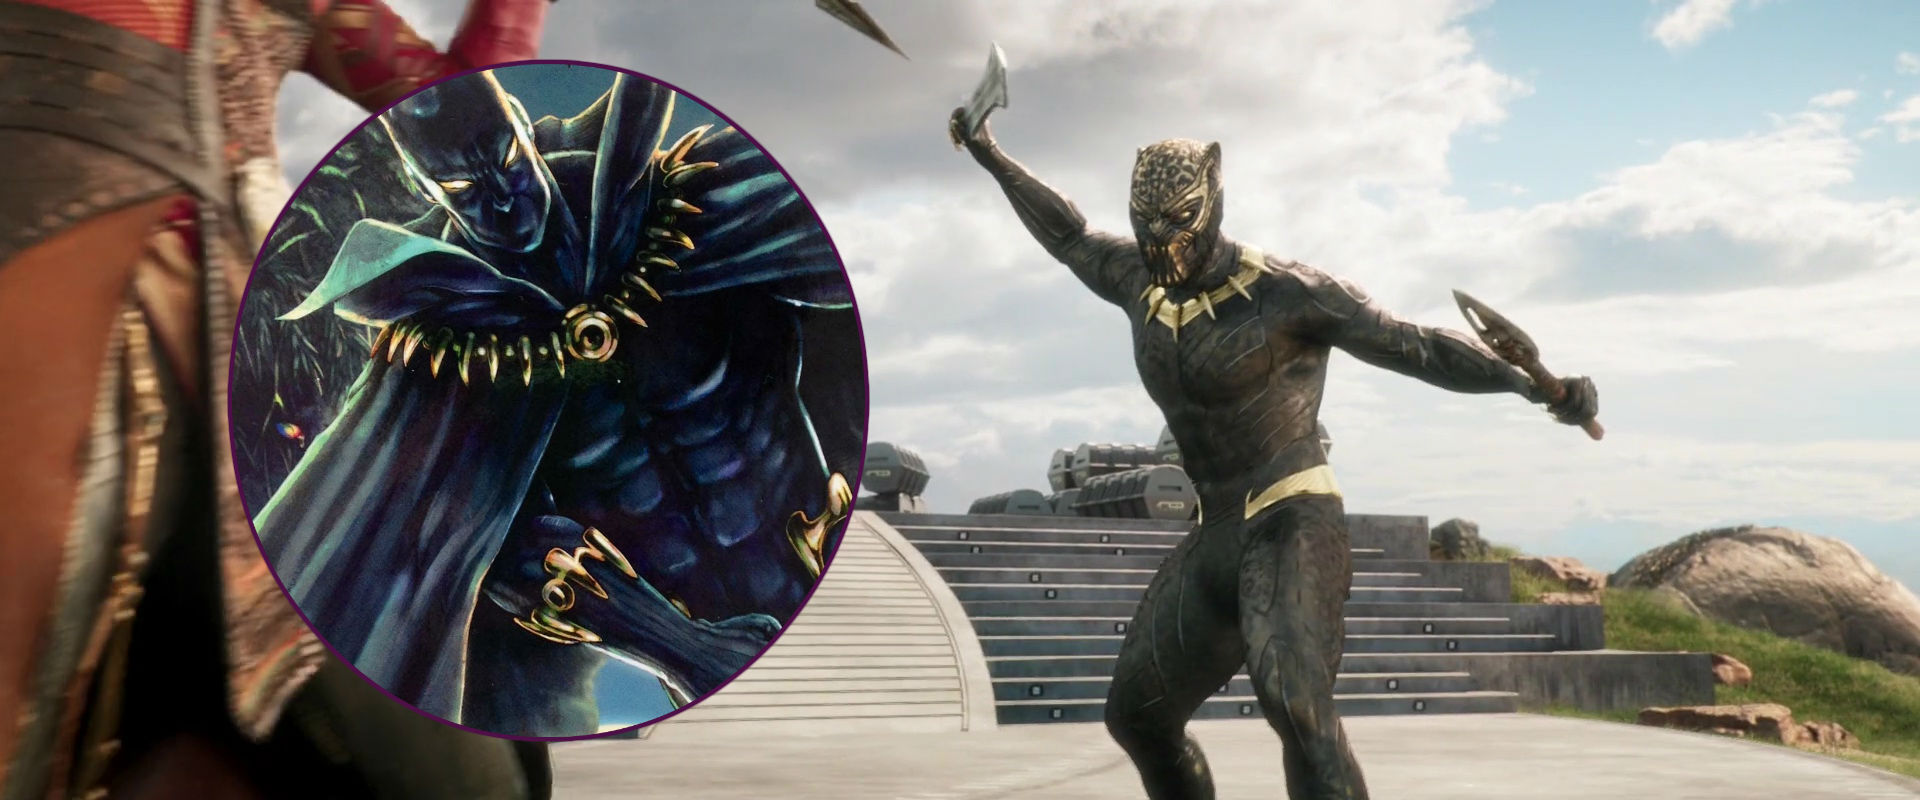 Gold Black Panther armor